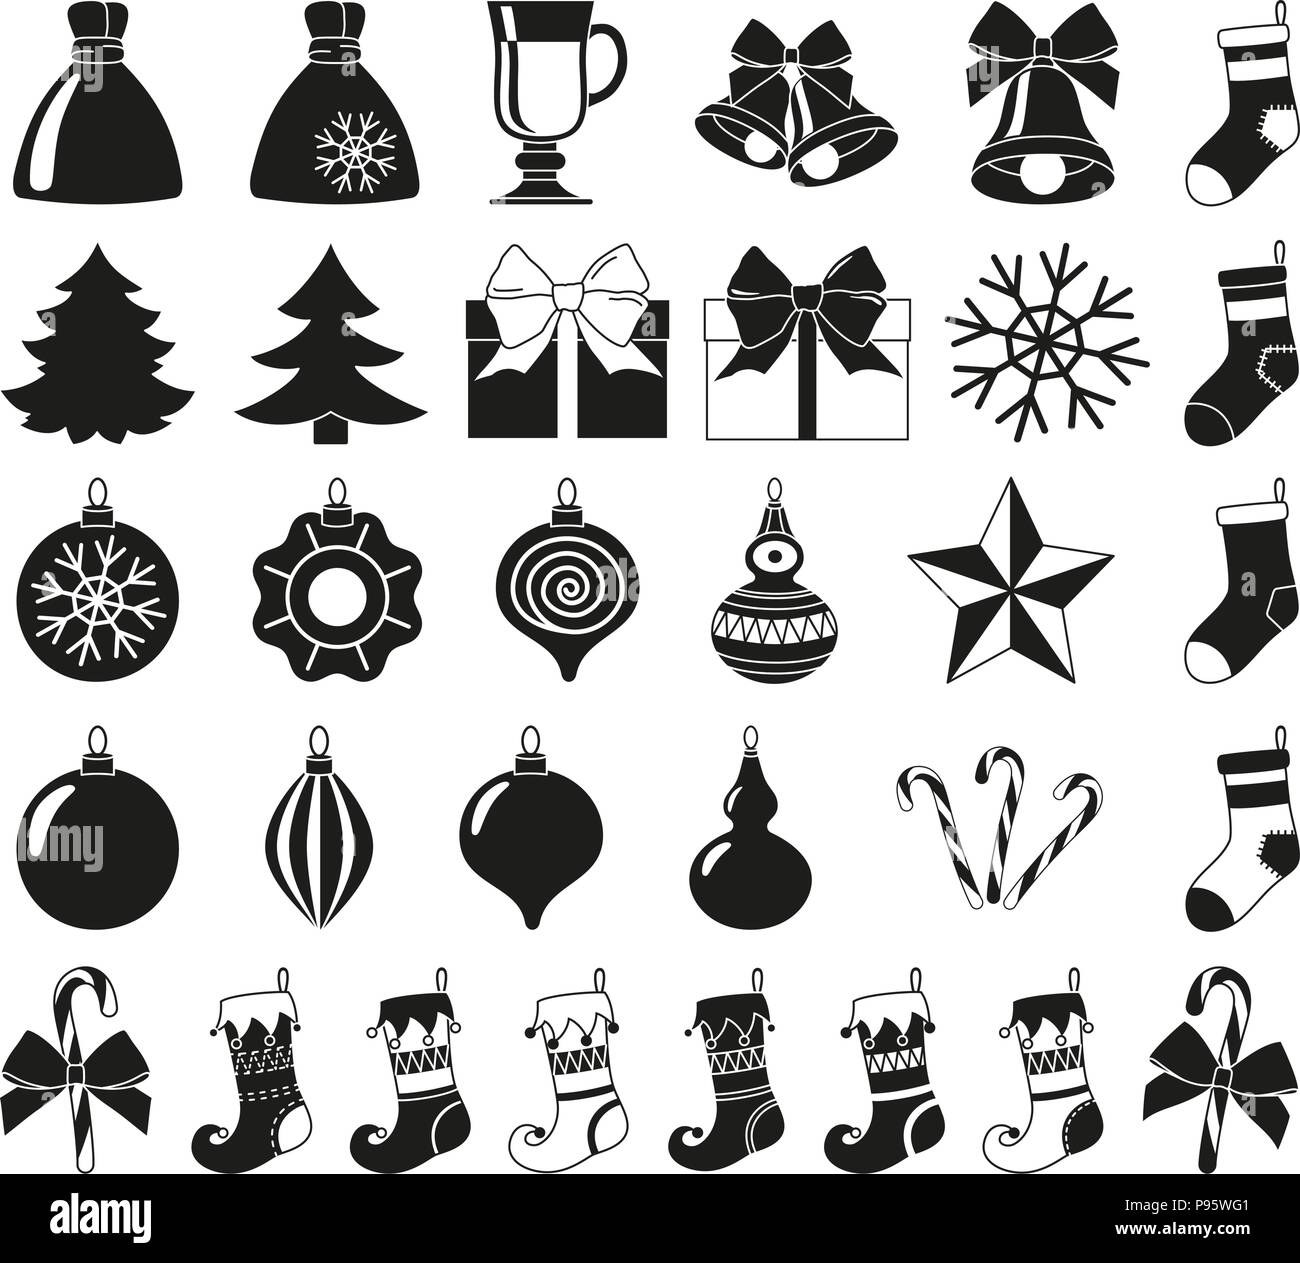 black and white 32 christmas elements silhouette set new year holiday decorations vector illustration for icon logo sticker patch label badge